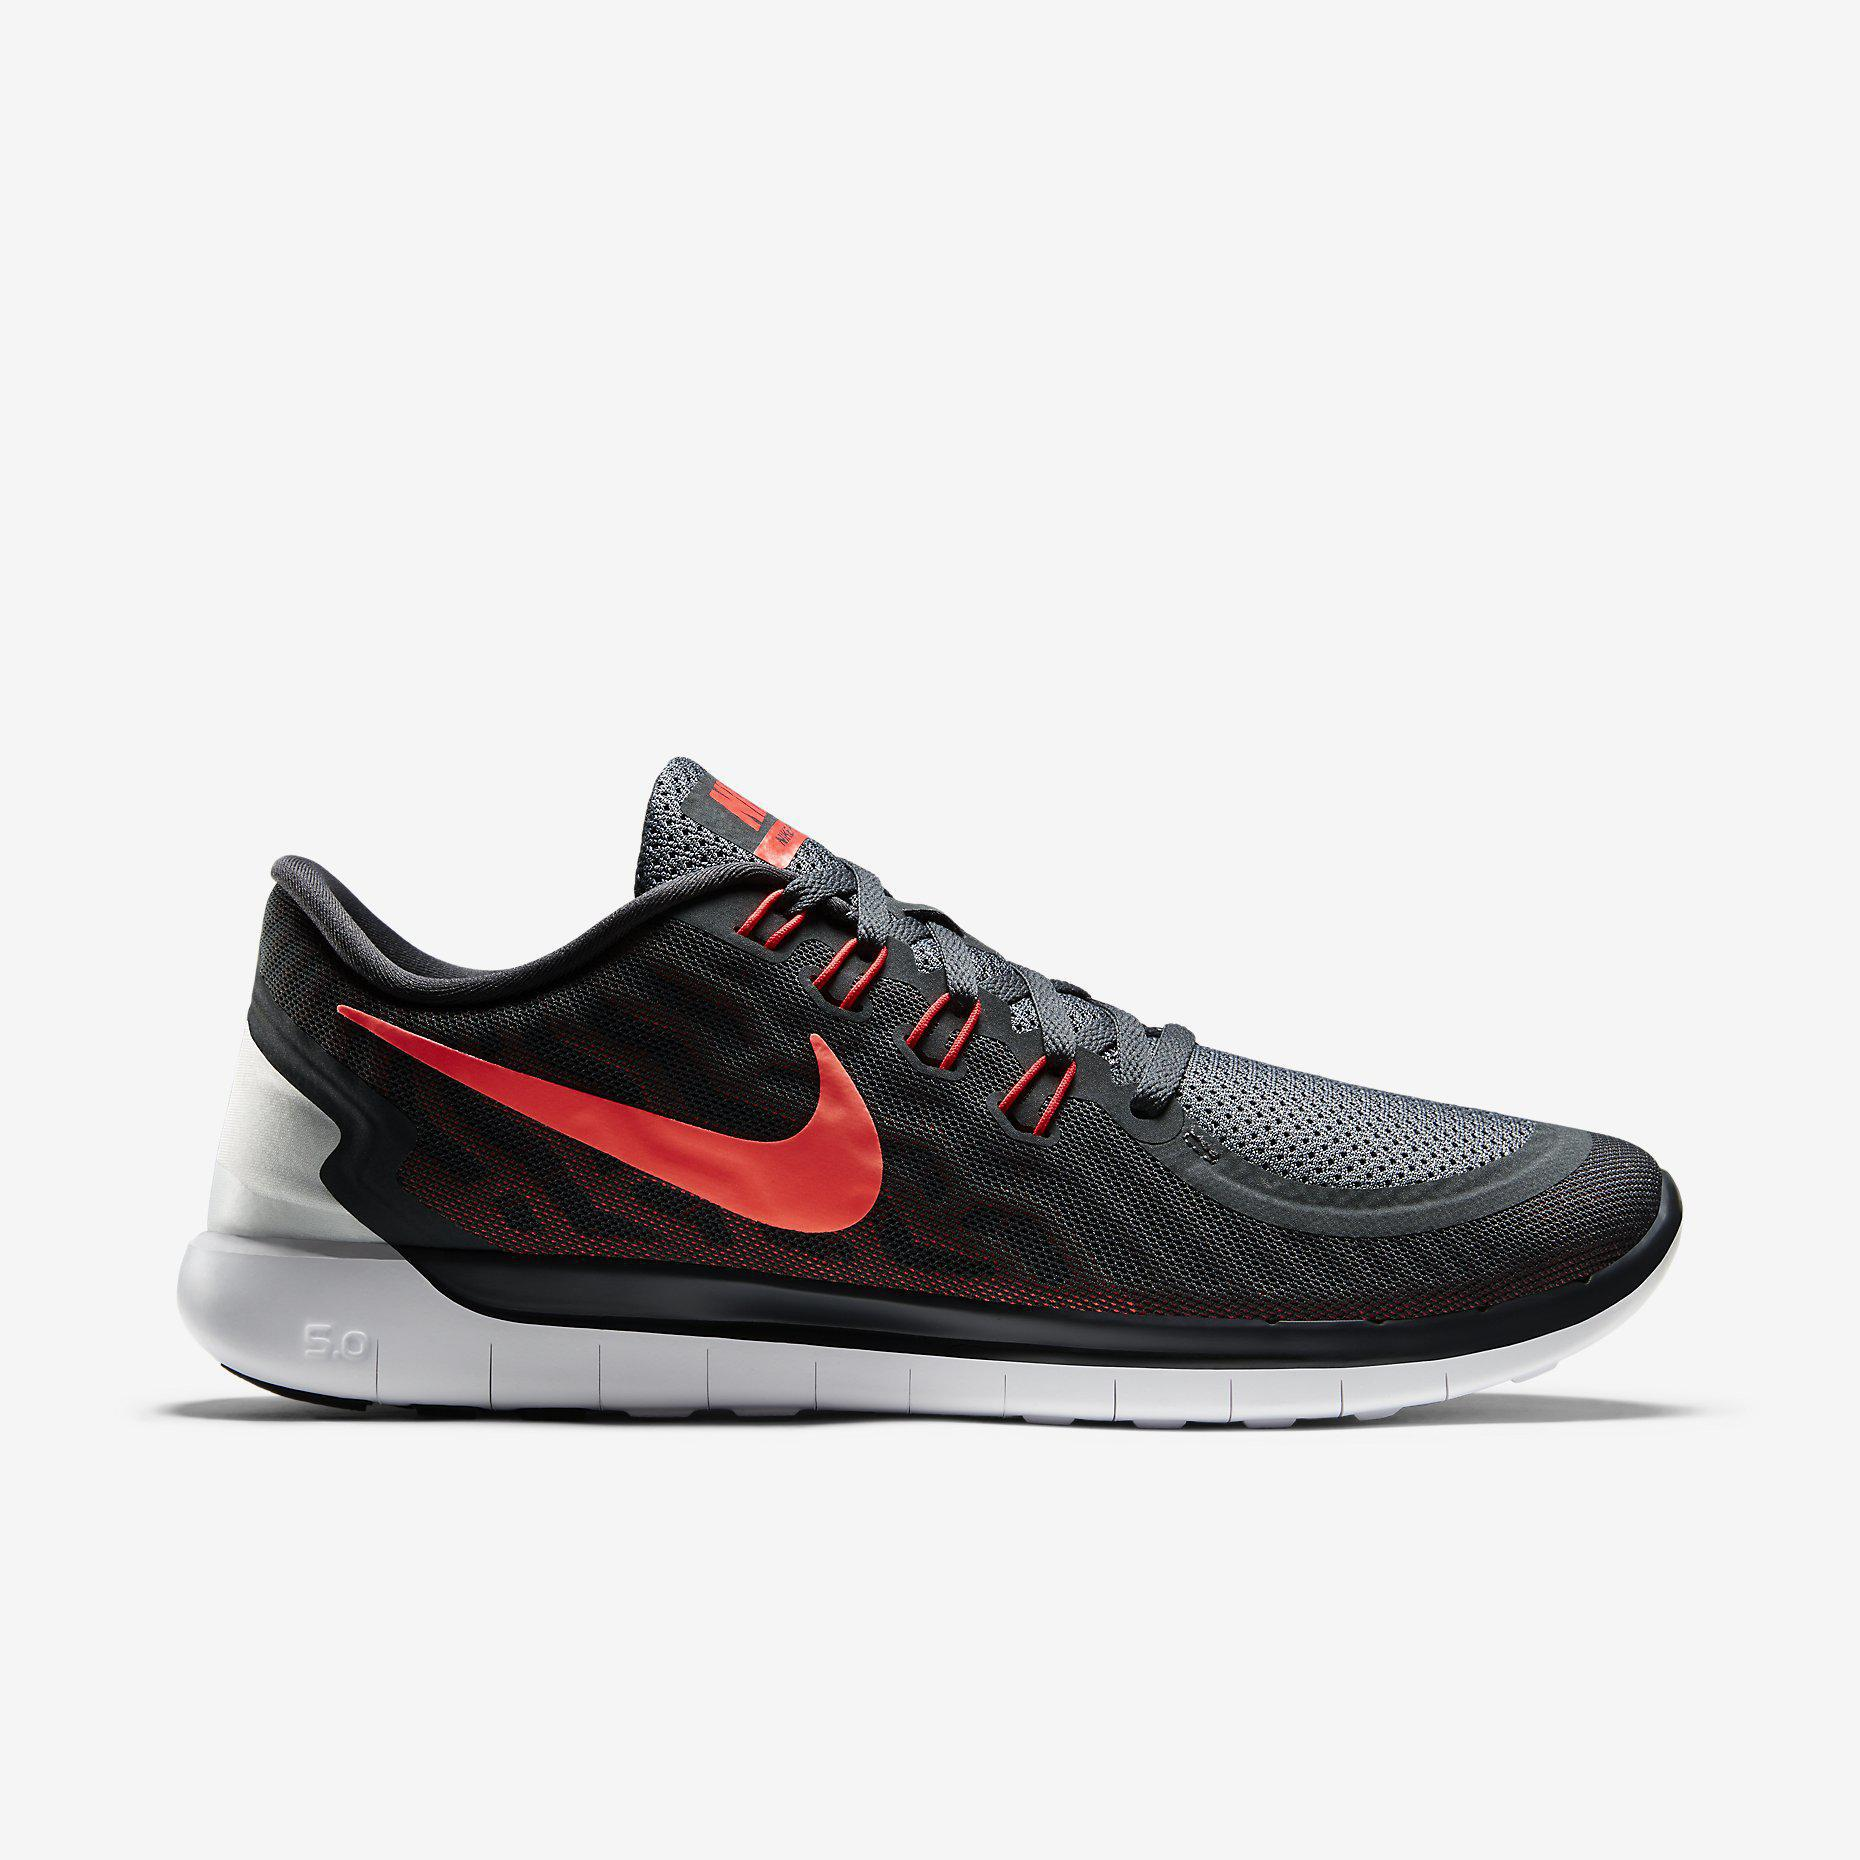 new product 73799 f271a Nike Mens Free 5.0+ Running Shoes - Anthracite/Bright Crimson